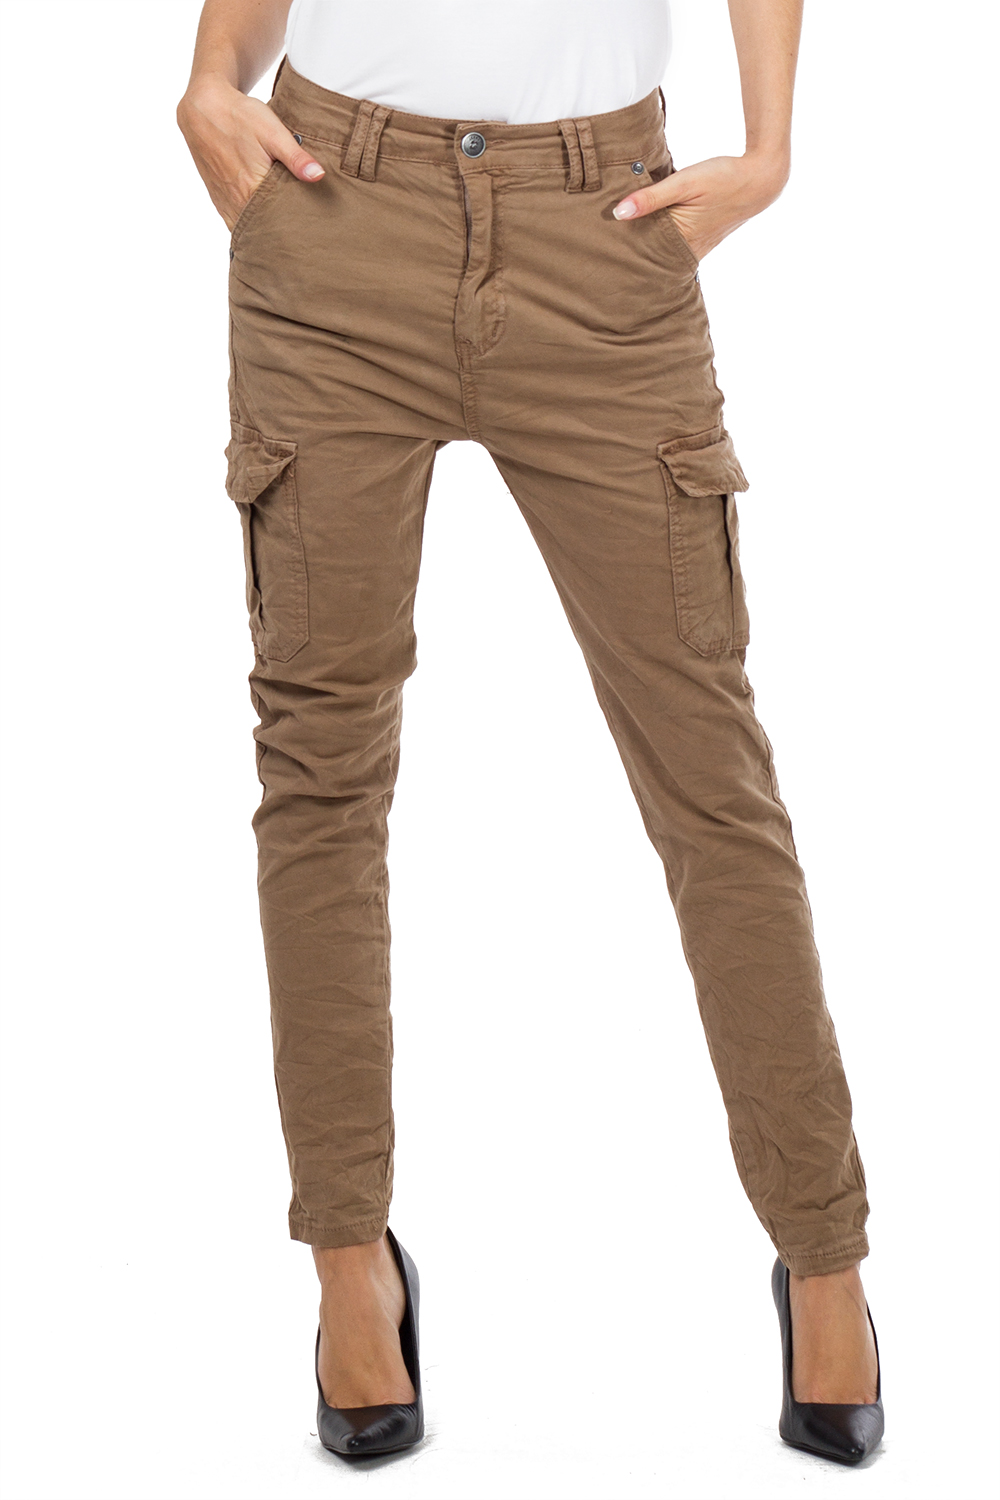 Black Red Brown /& Khaki Creased Cotton Slim Leg Cargo Combat Pants Trousers